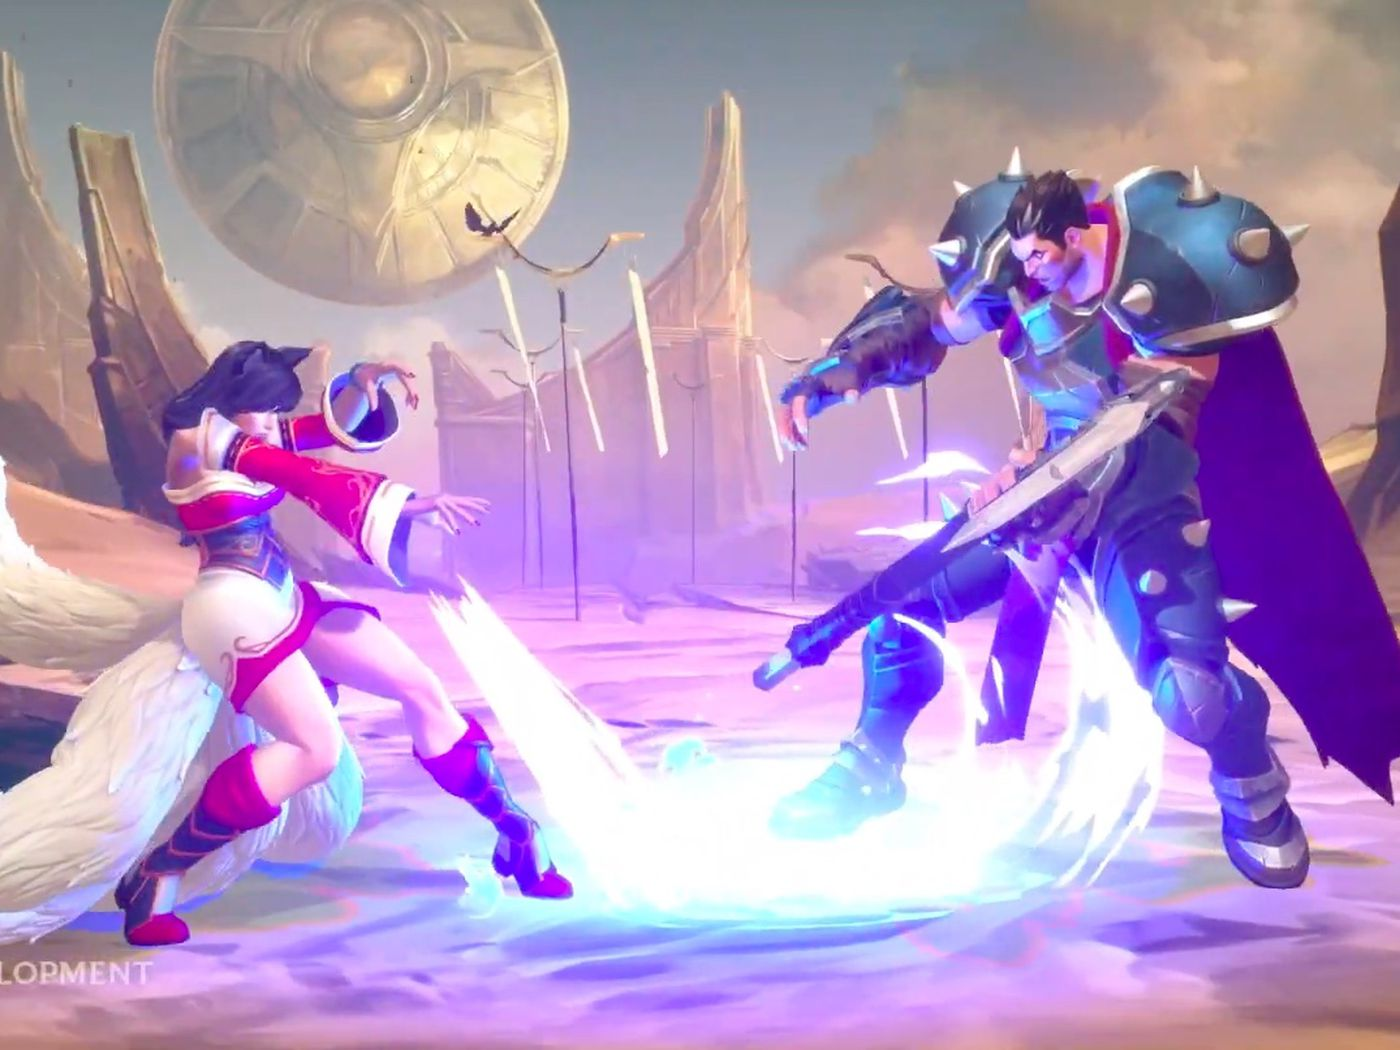 Ahri R34 league of legends fighting game is riot's 'project l' - polygon